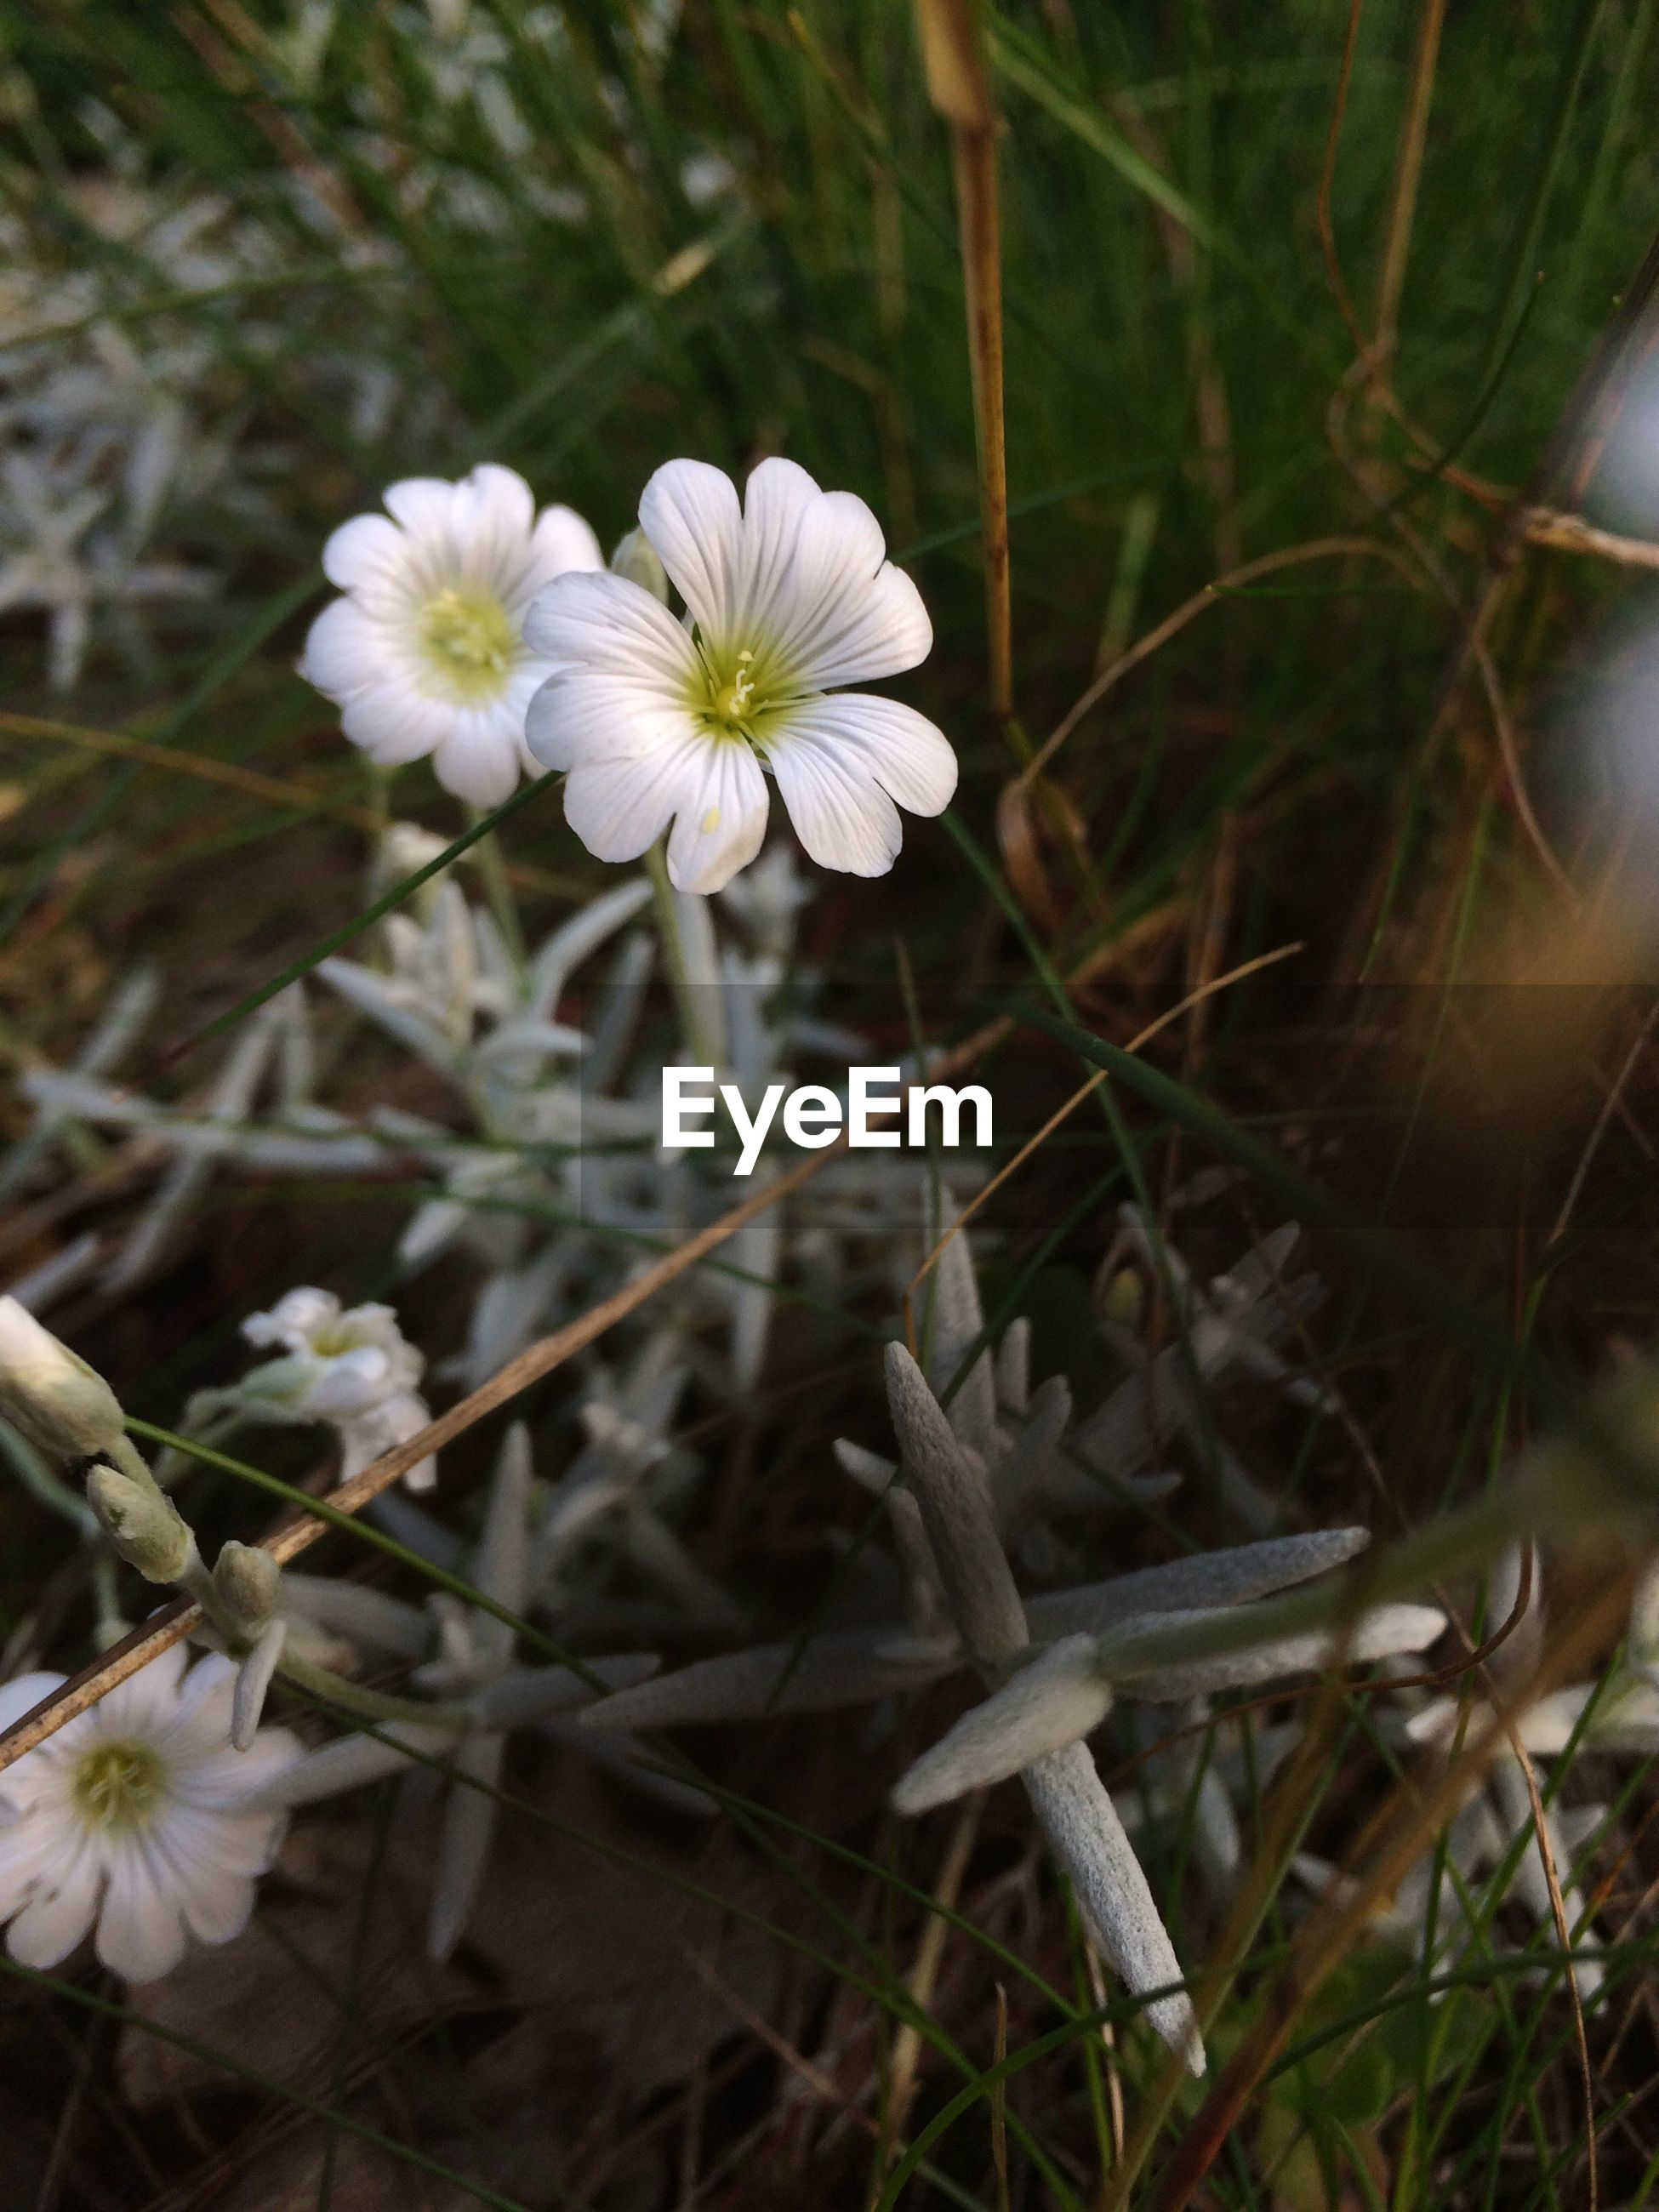 flower, growth, fragility, freshness, petal, white color, plant, focus on foreground, nature, beauty in nature, close-up, stem, flower head, blooming, field, in bloom, wildflower, day, no people, outdoors